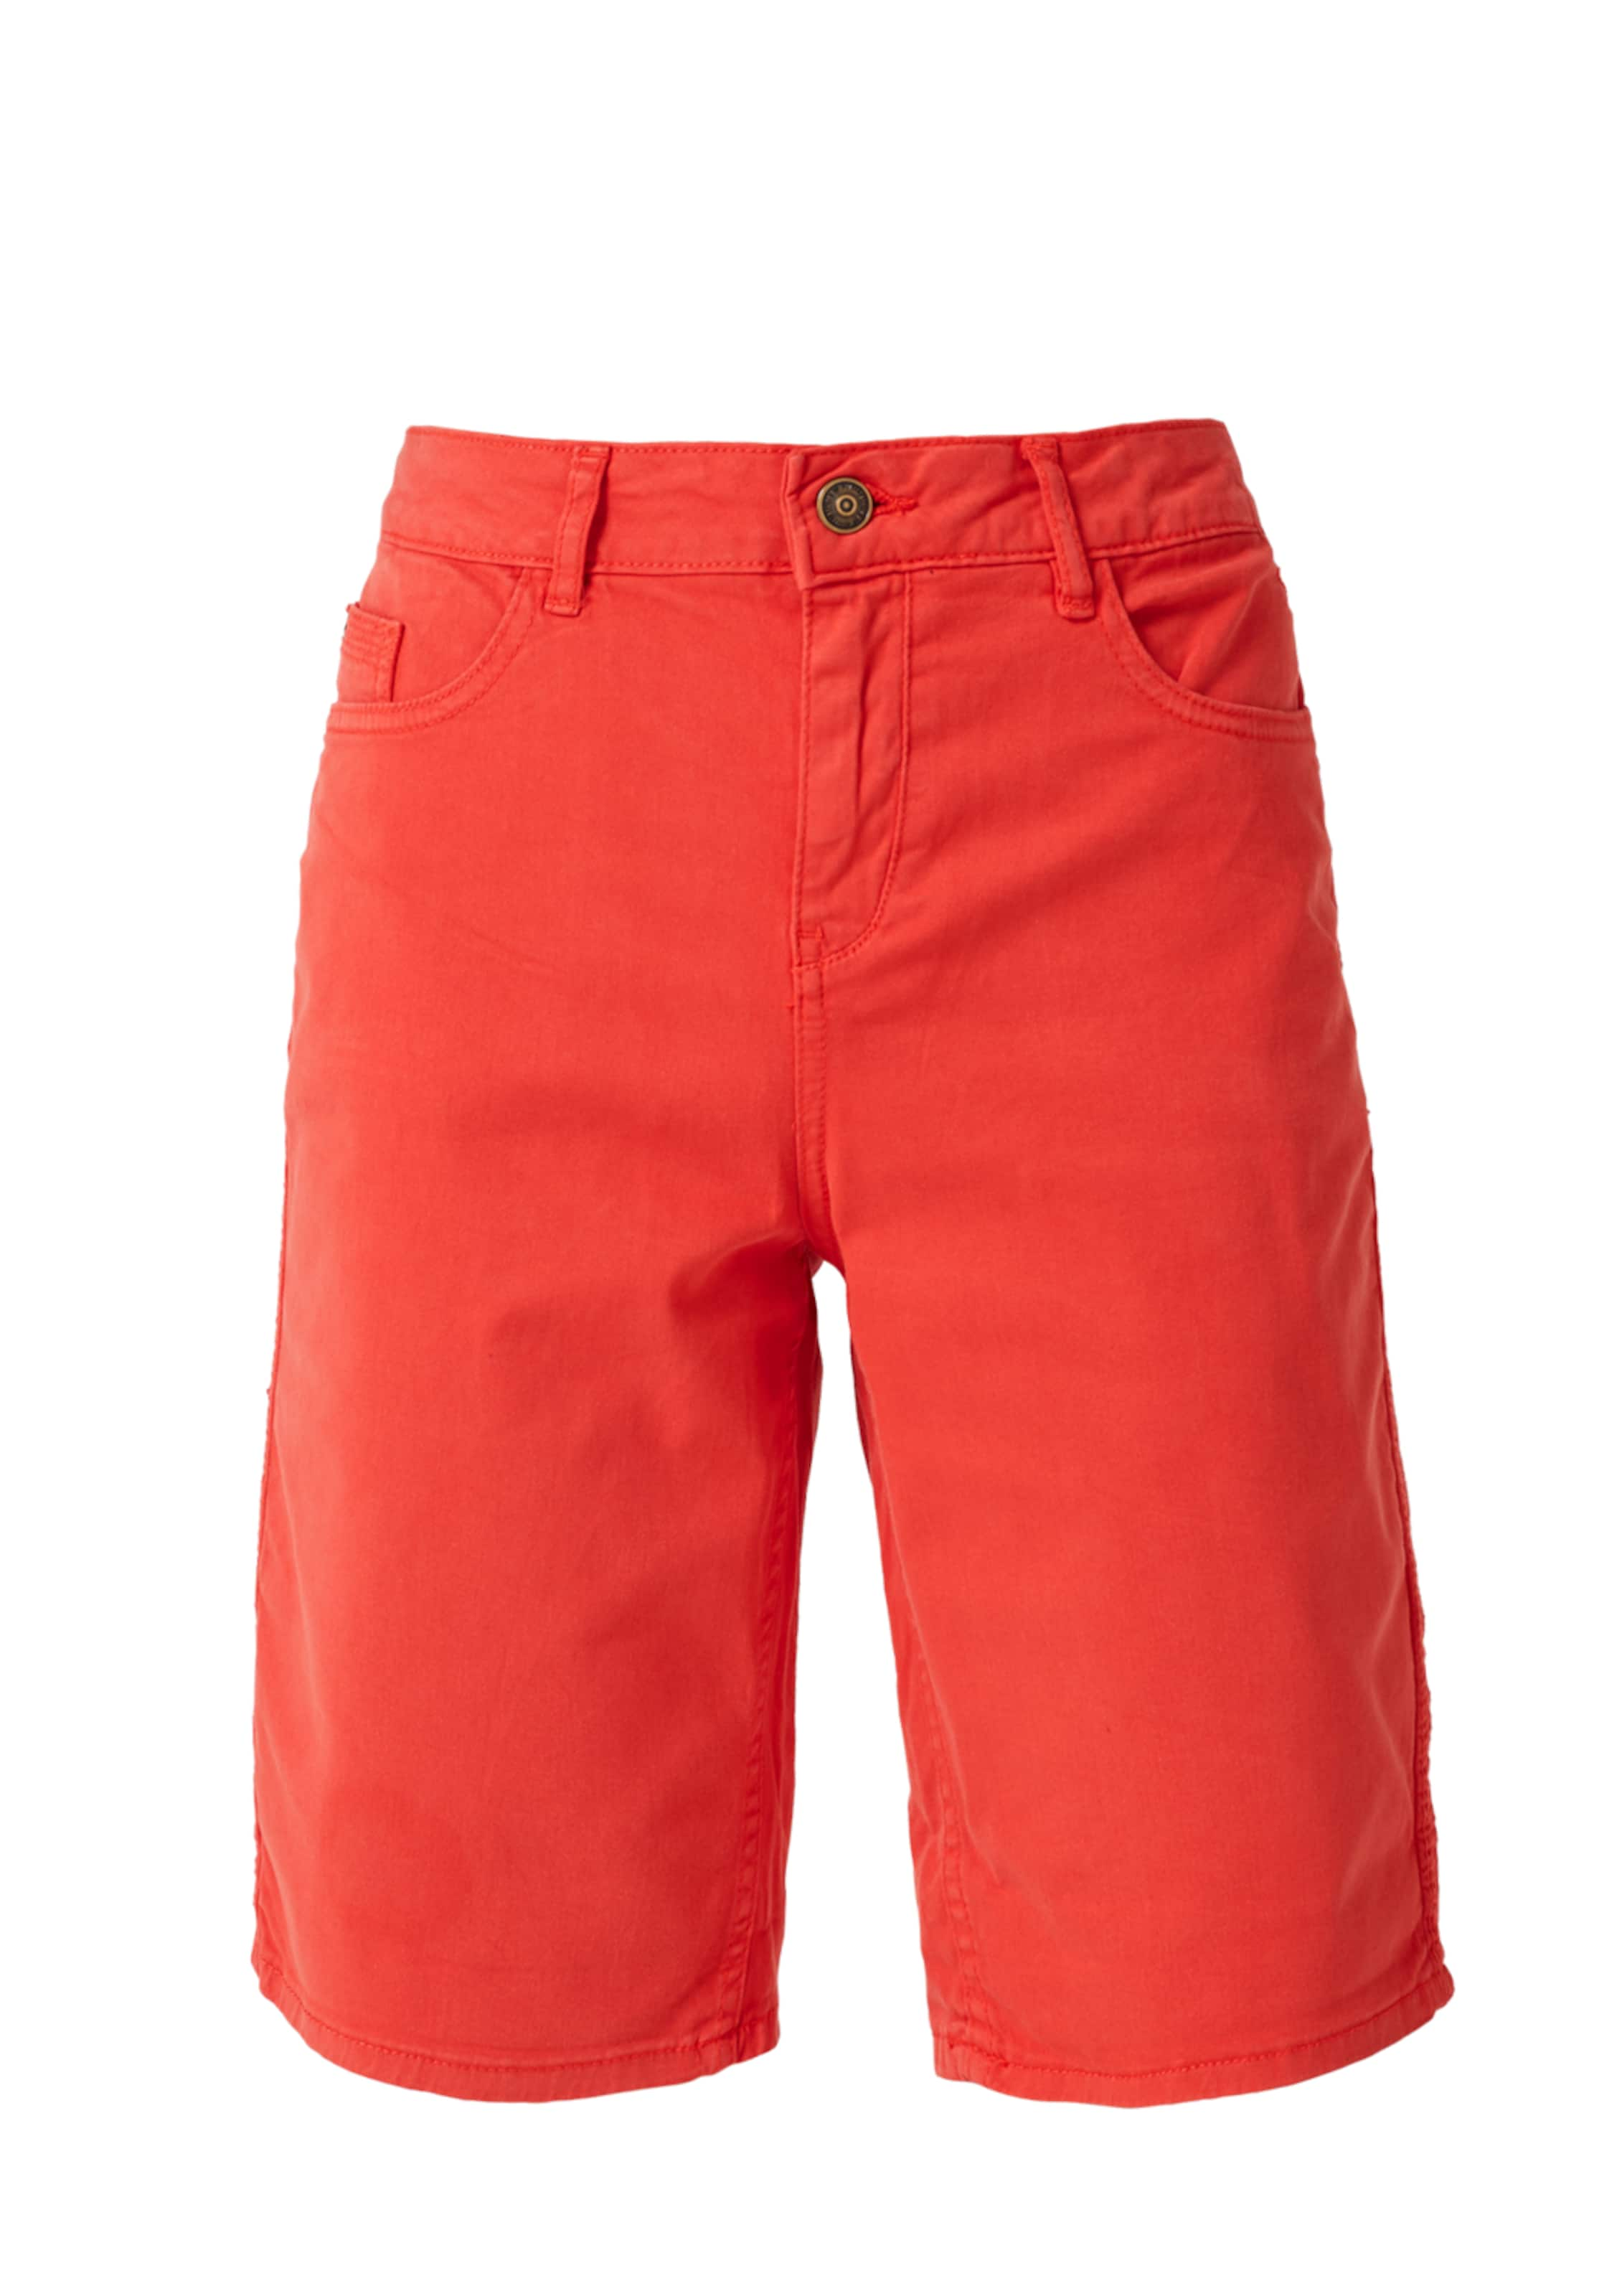 Red S Orangerot Label Shorts In oliver roWxBeQdC